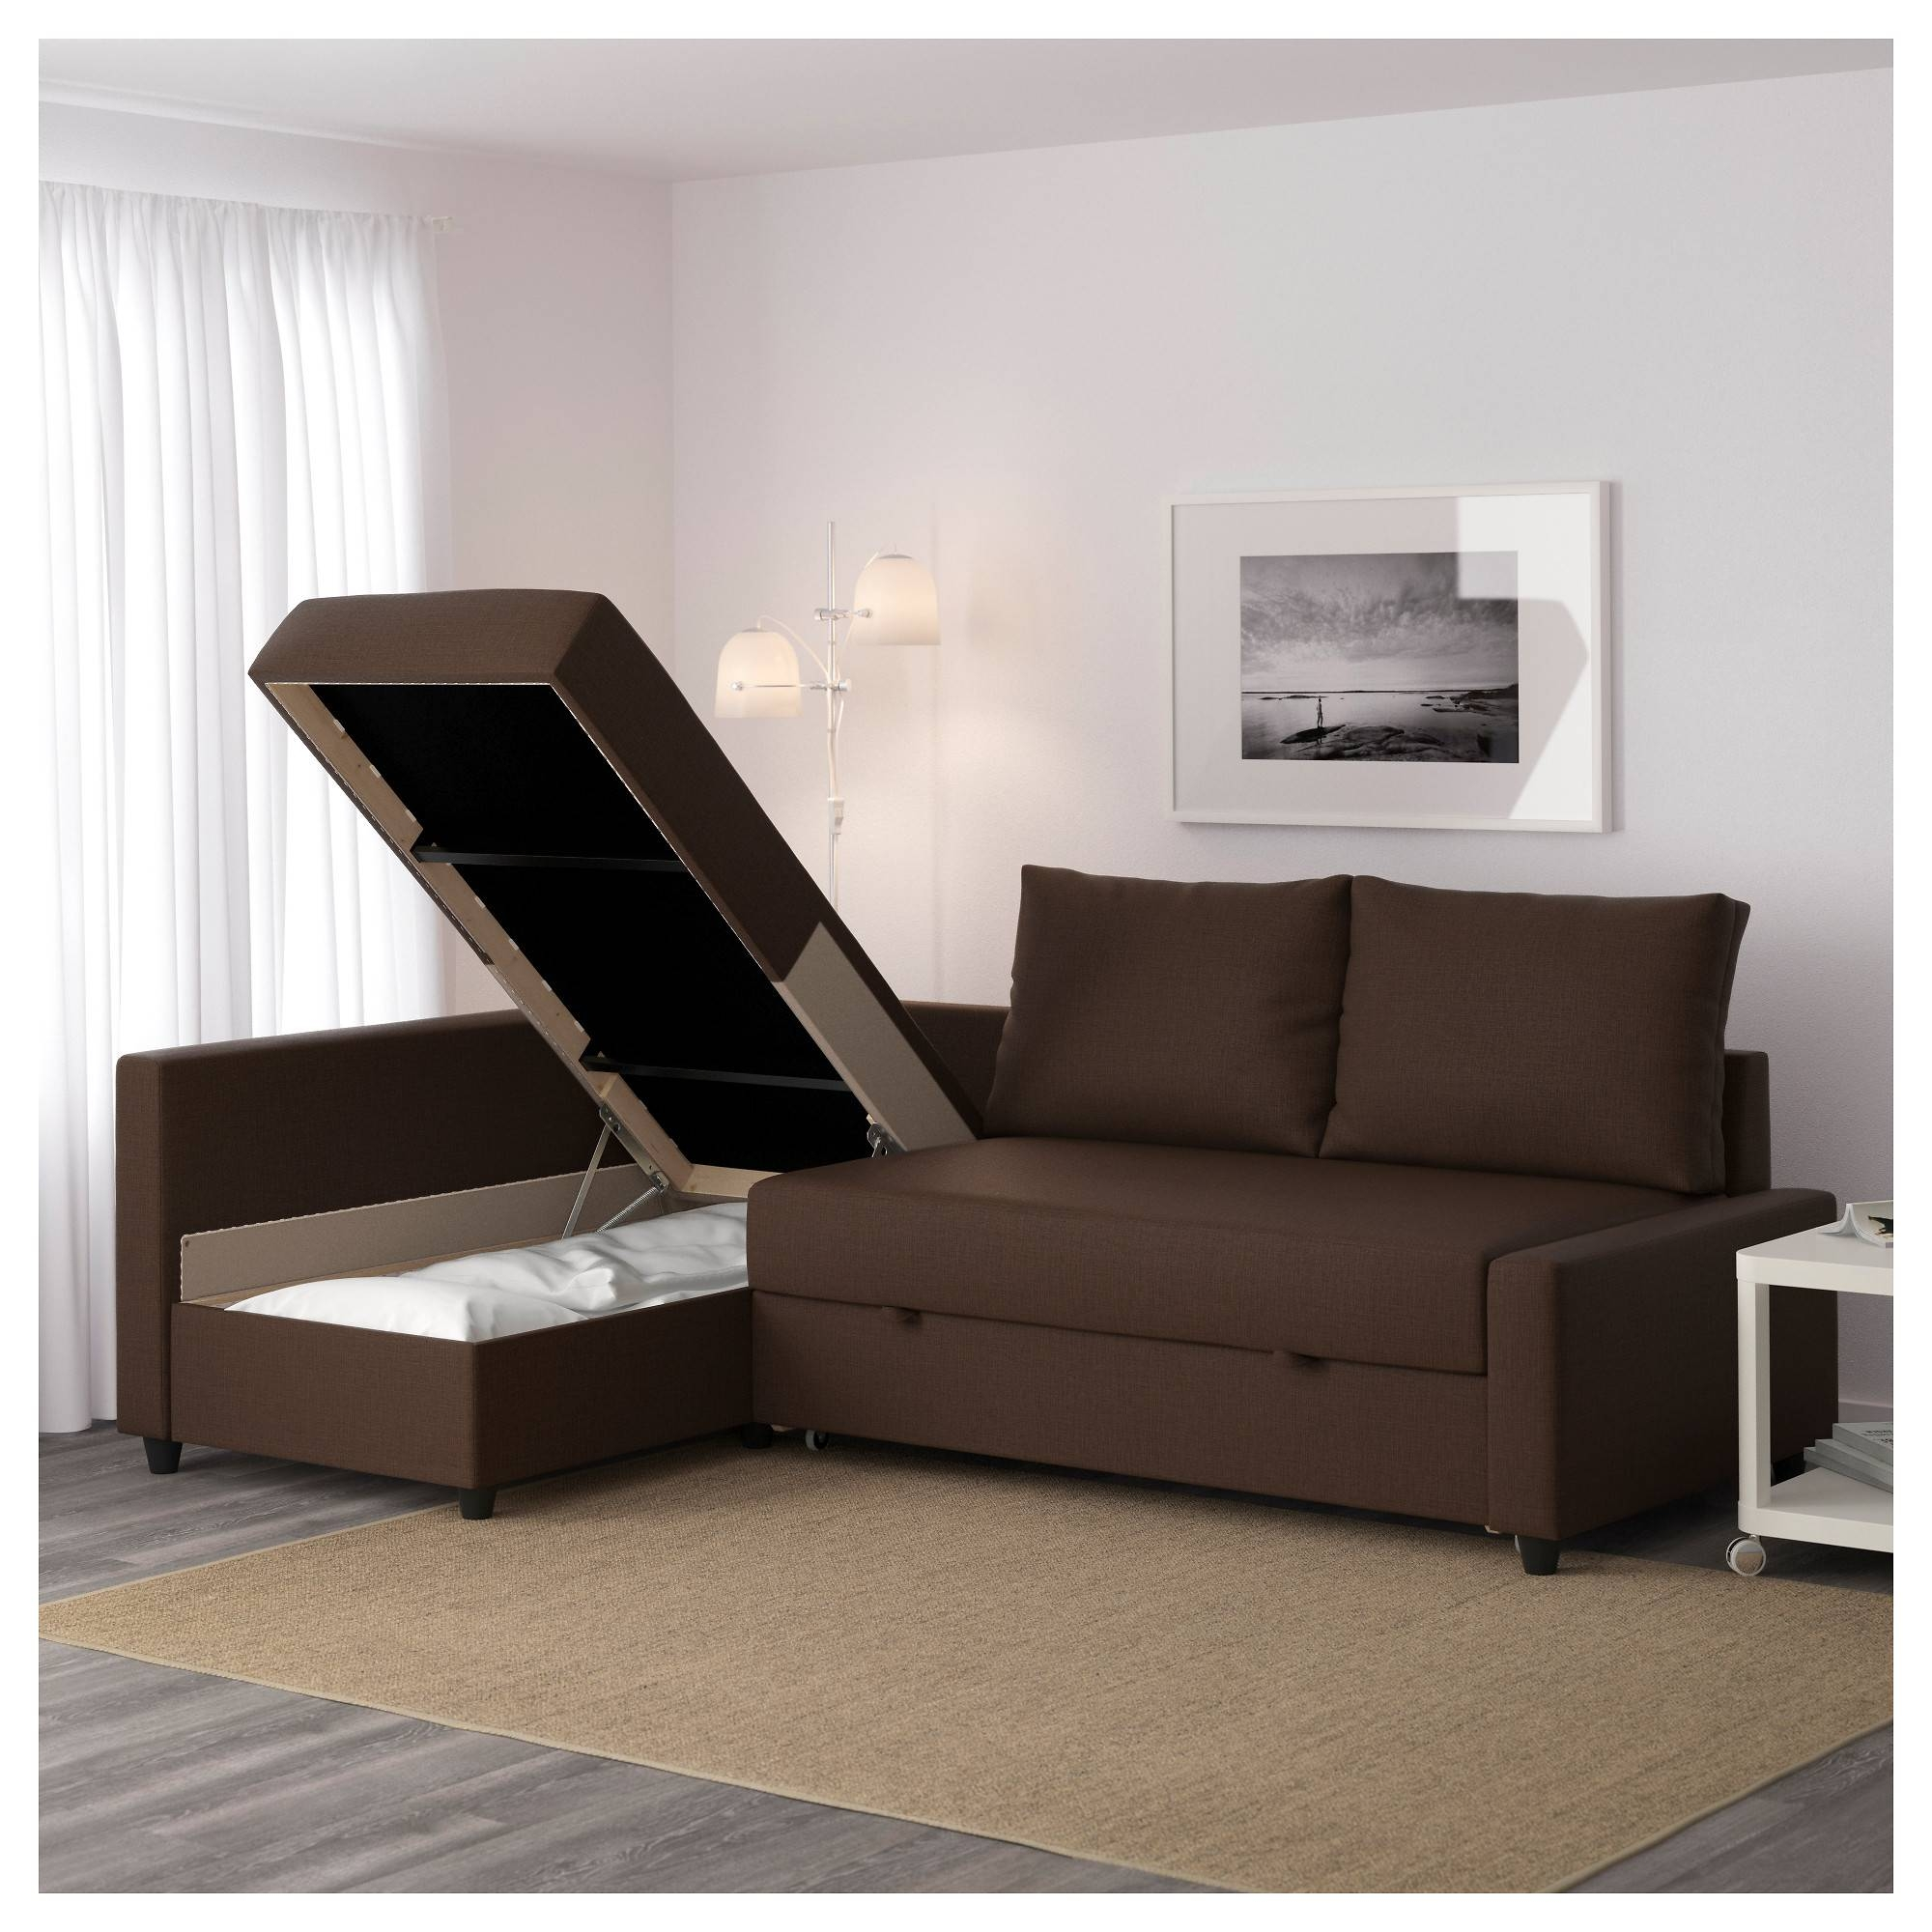 Friheten Corner Sofa-Bed With Storage - Skiftebo Dark Gray - Ikea throughout Corner Couch Bed (Image 14 of 30)